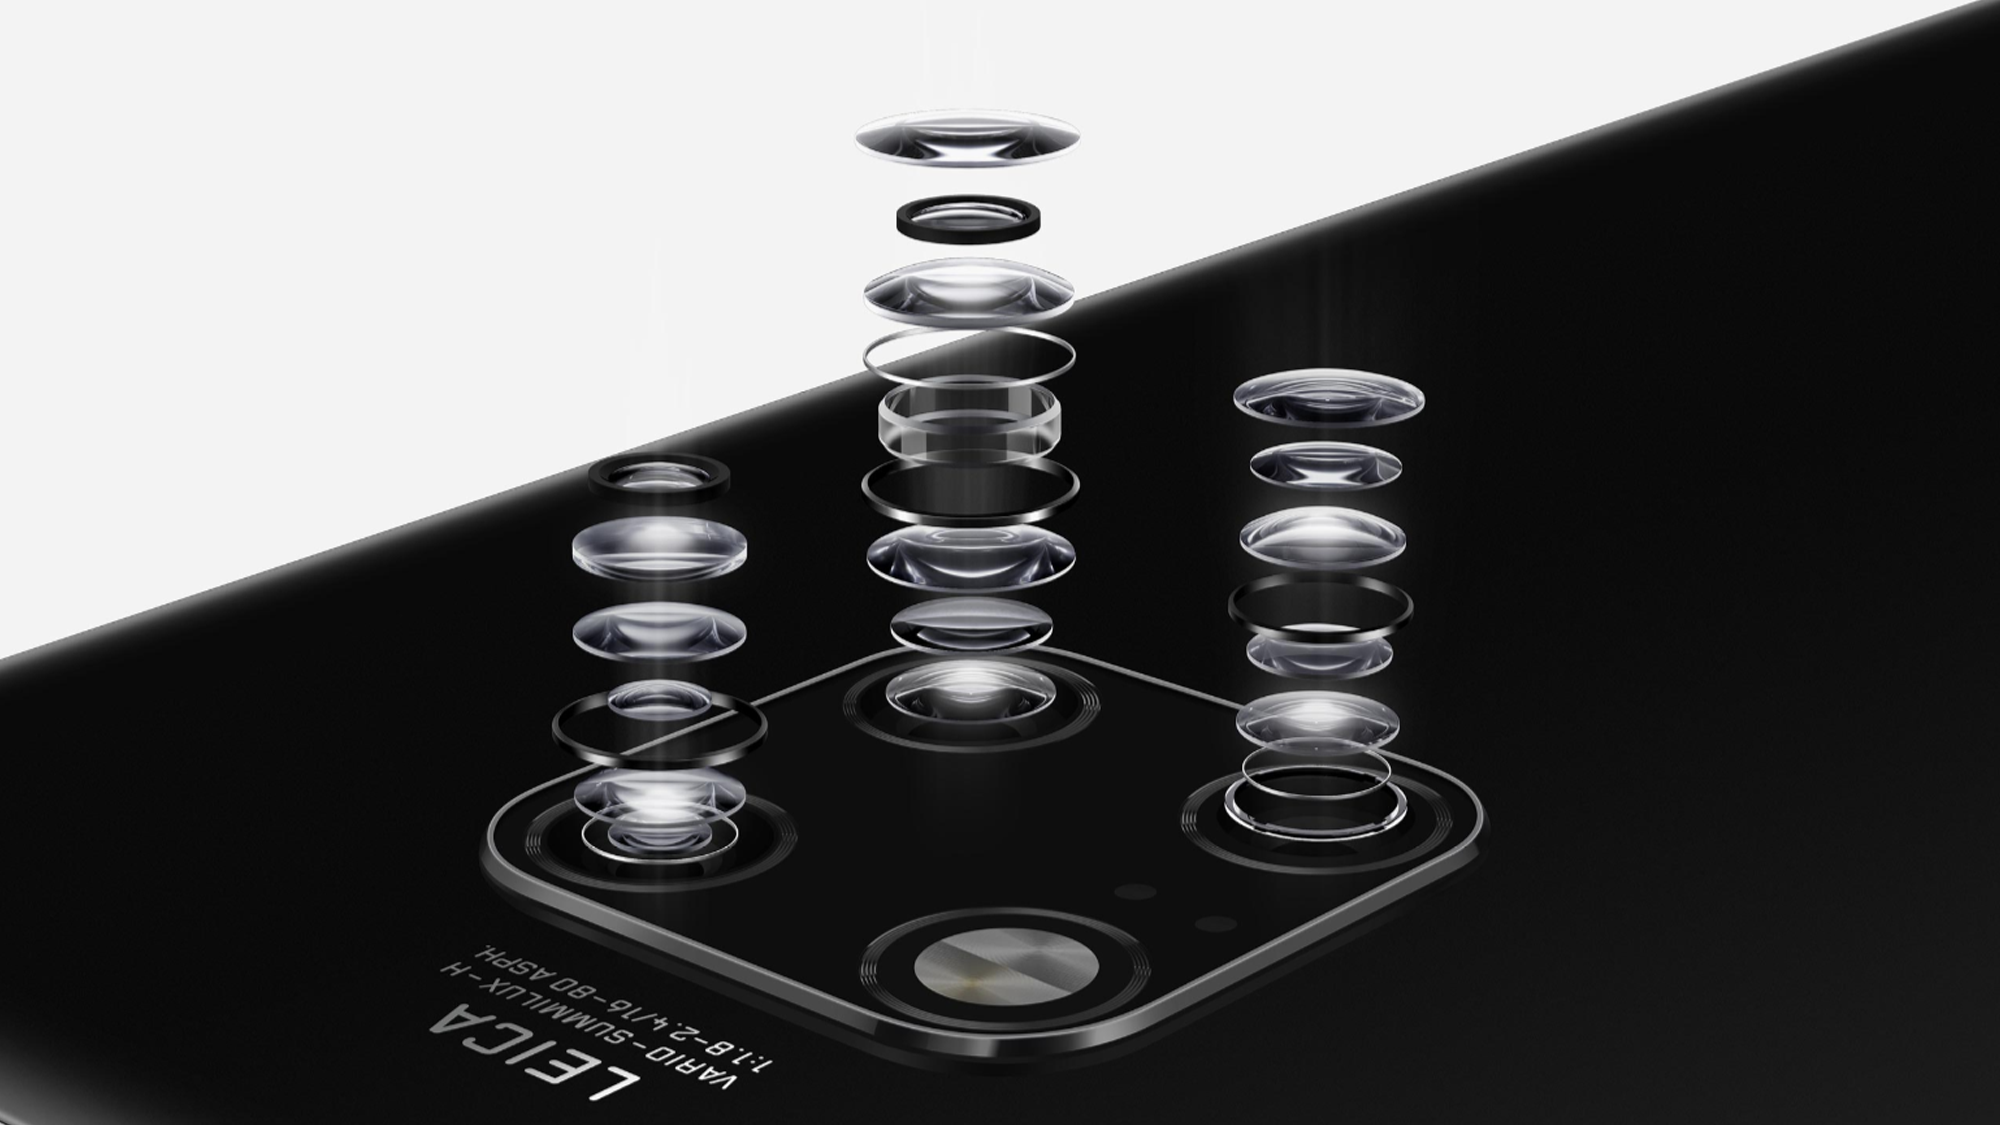 huawei, mate 20 pro, mate 20, phone, android, launch, camera, triple camera